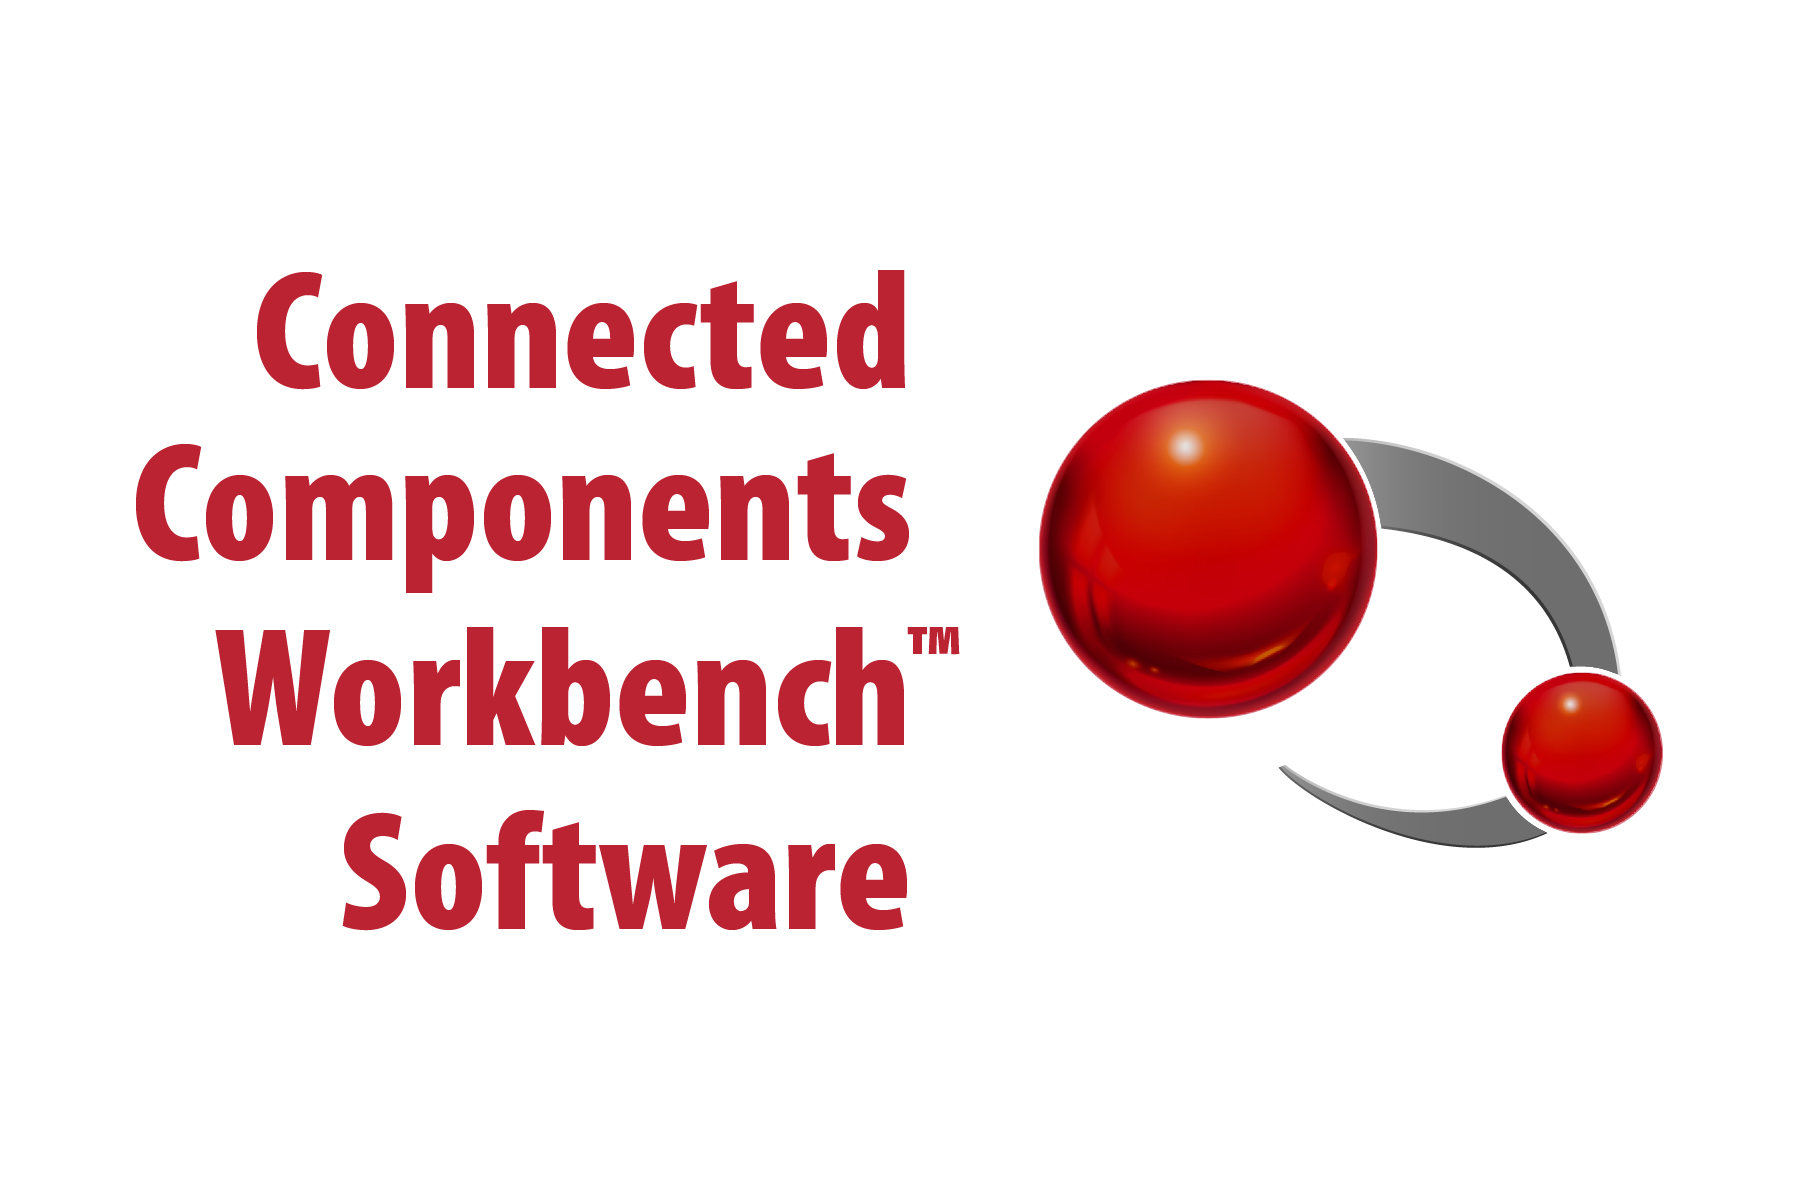 Rockwell Automation announces latest version of Connected Components Workbench software